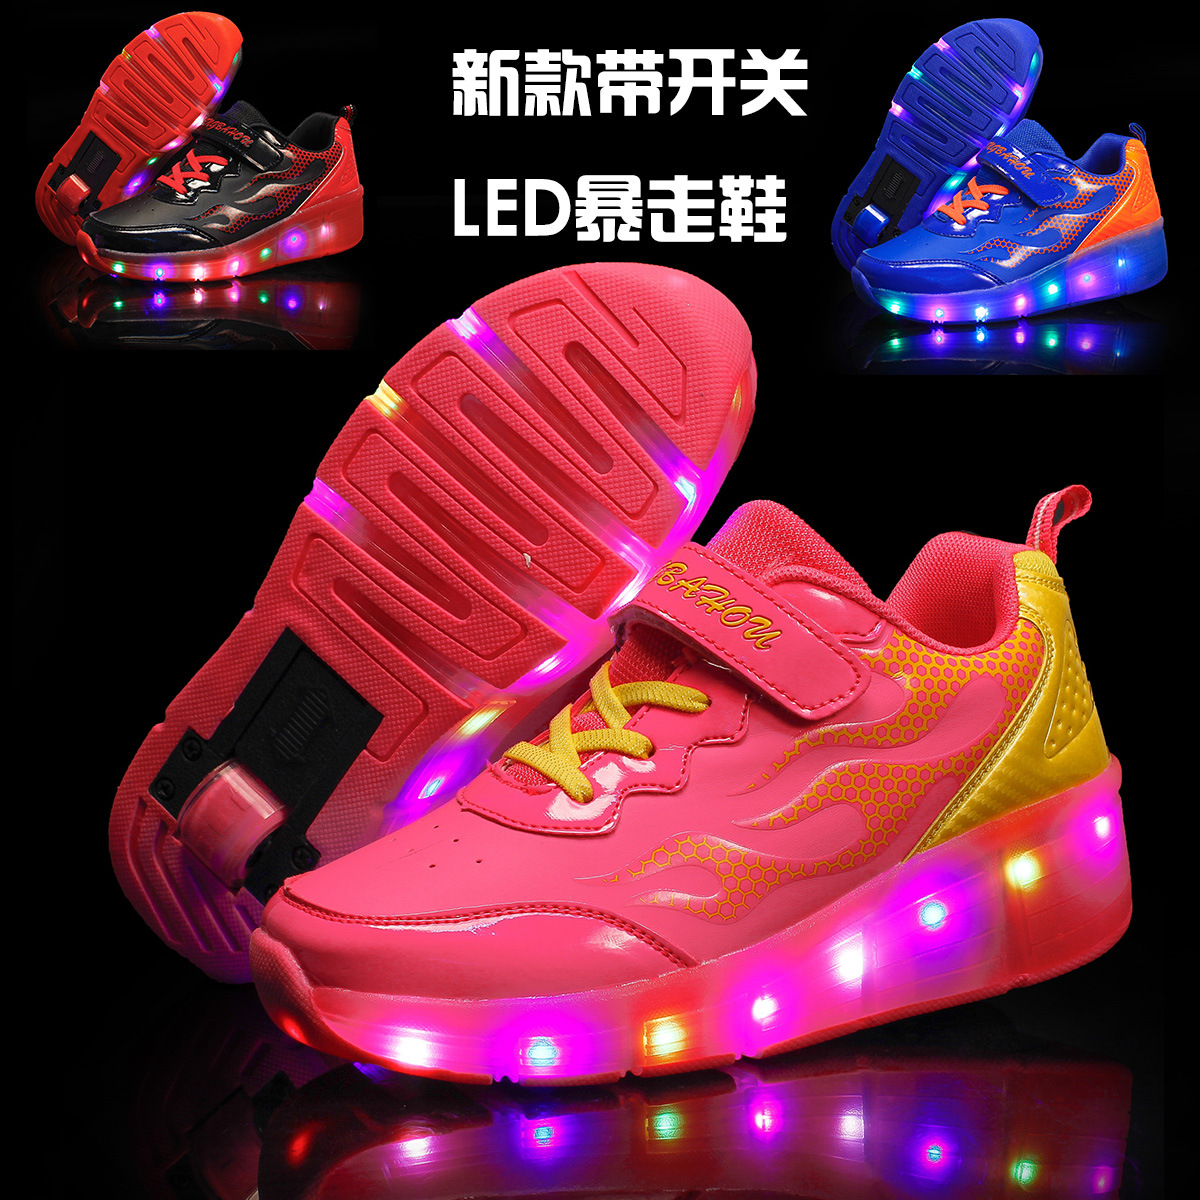 New Style Light Single Wheel Walking Shoes Light Up Shoes LED Shoes Men and Women Children Wheel sneakers